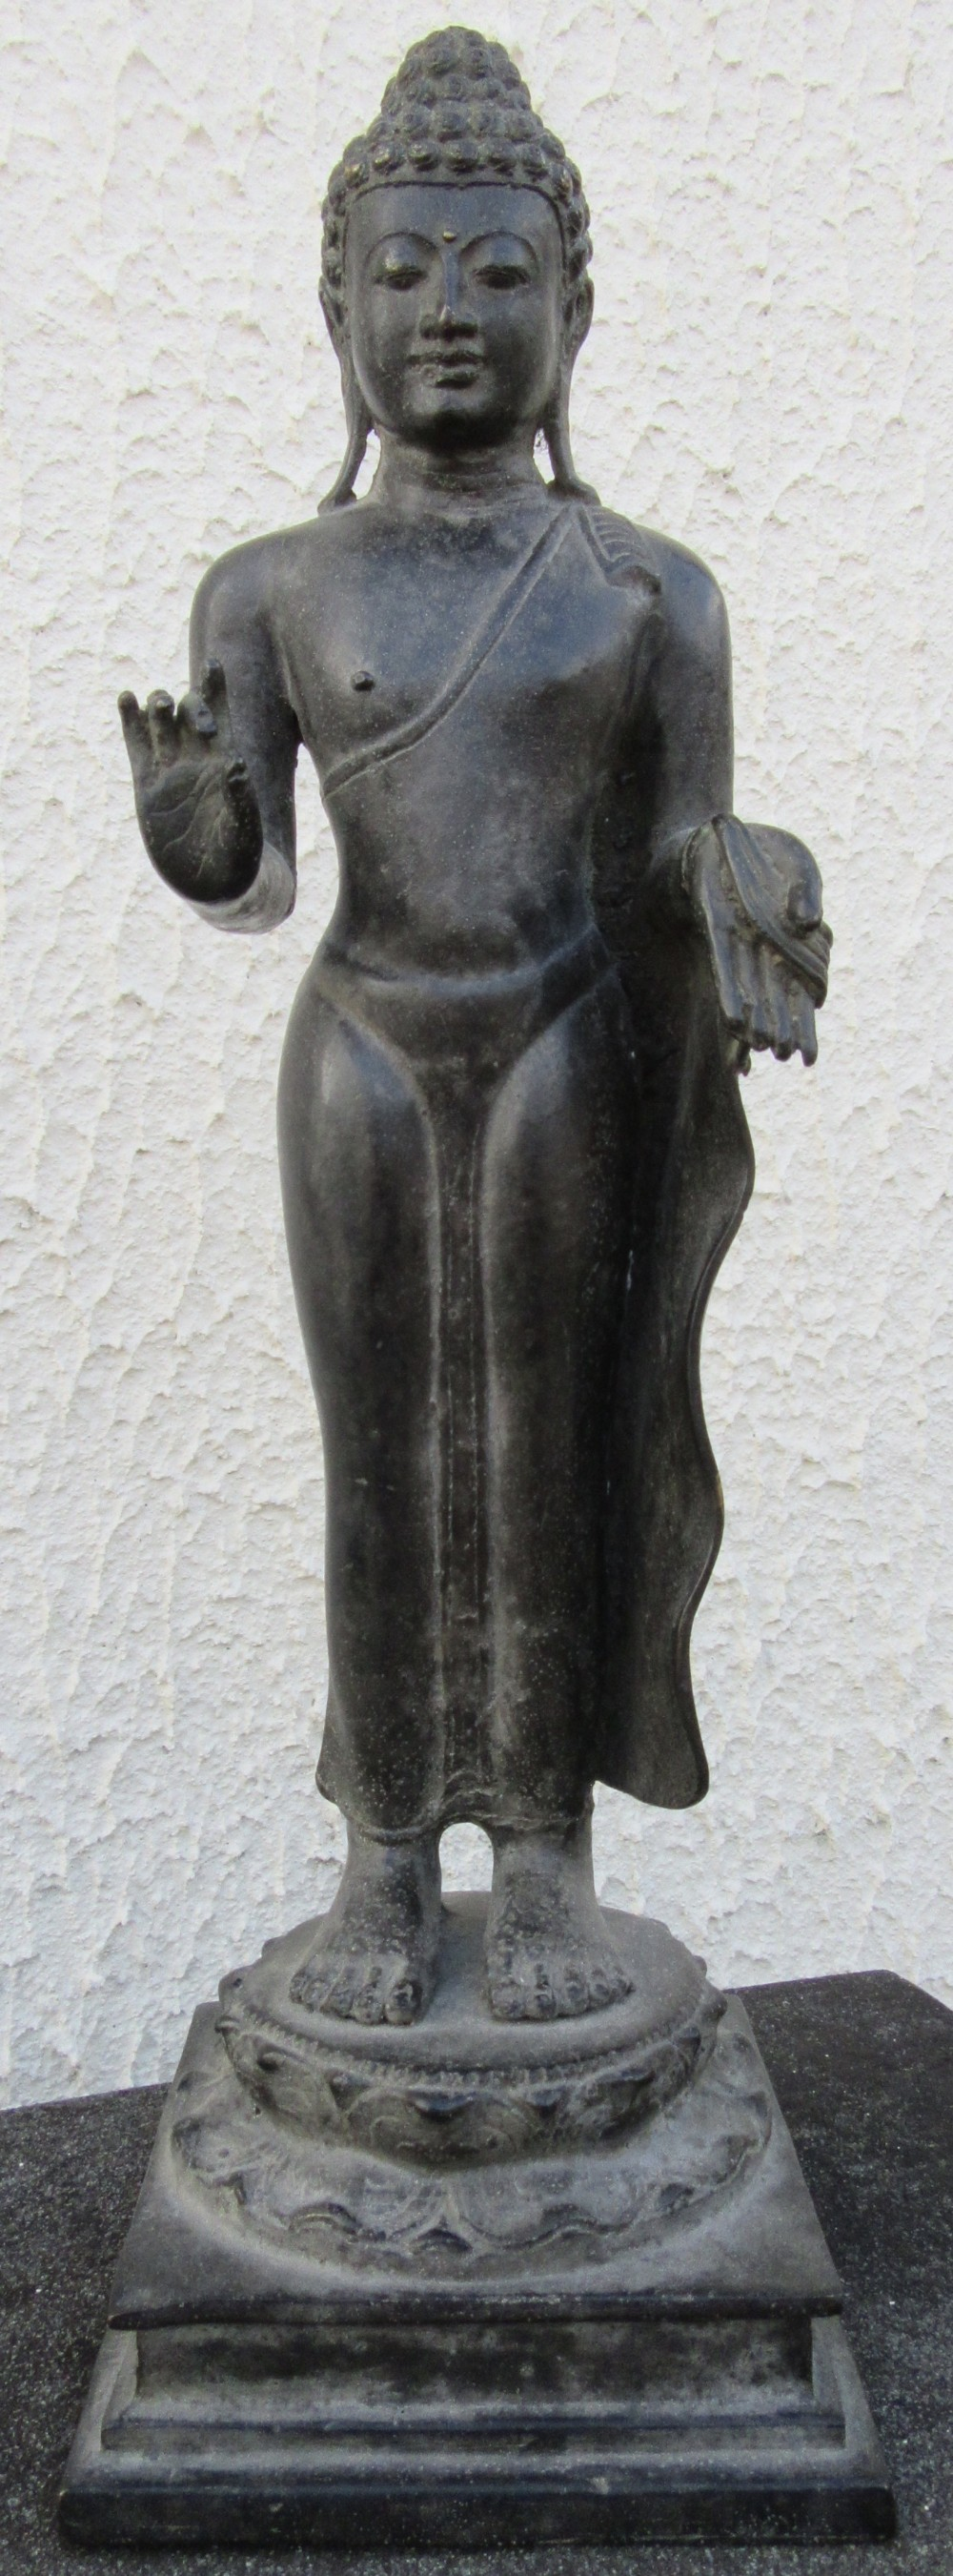 a rare bronze figure of the standing buddha 14th century